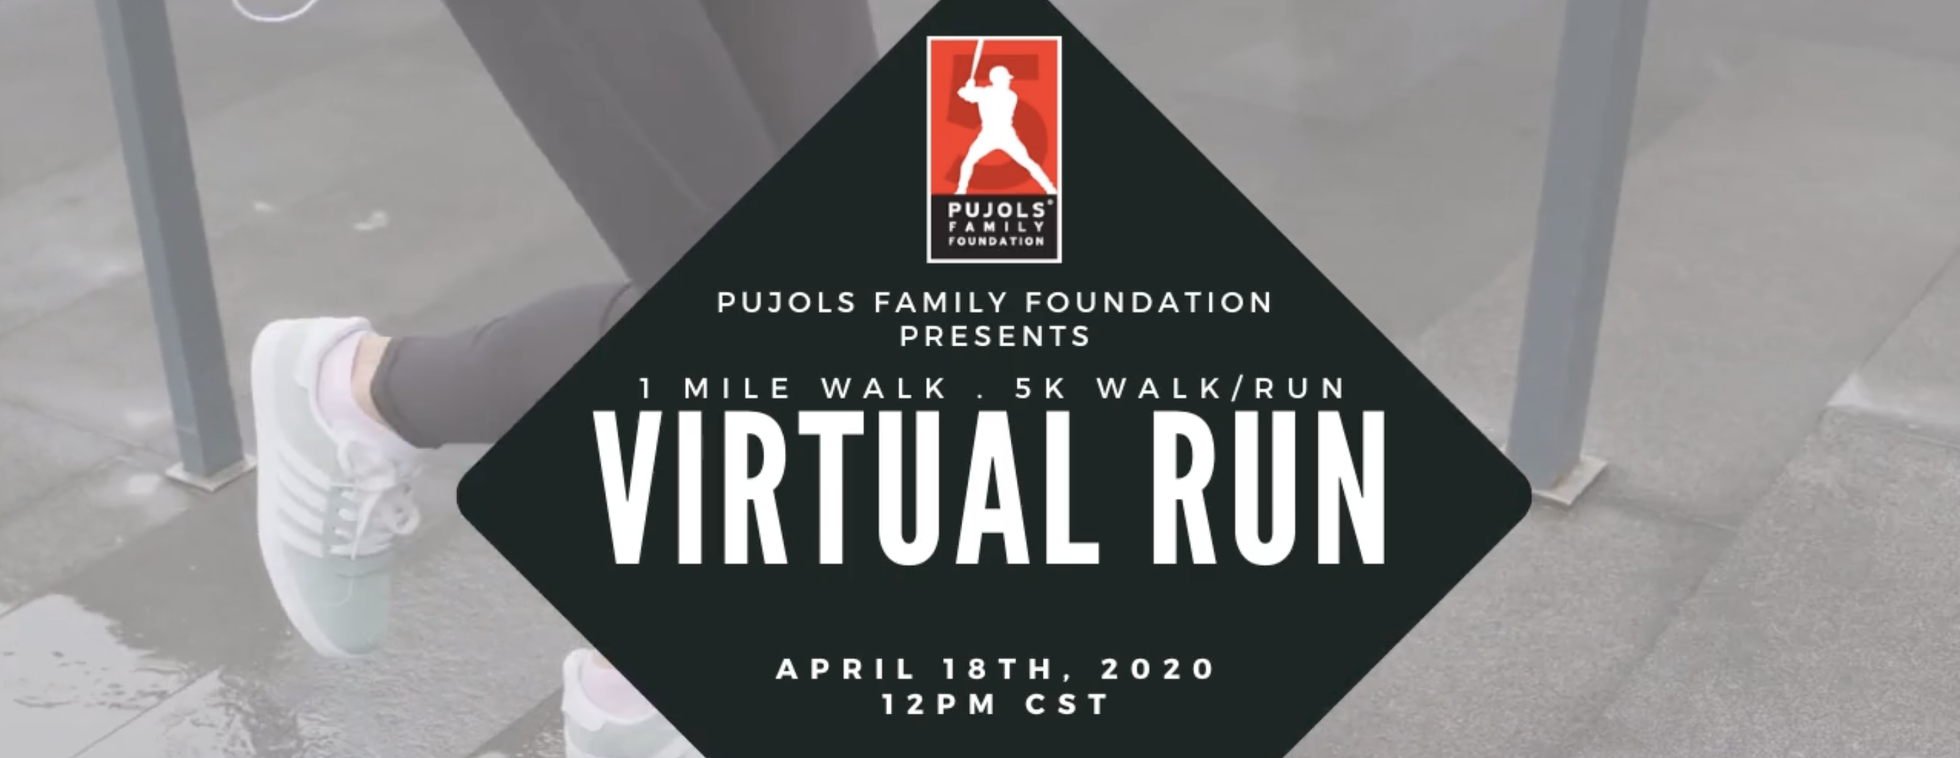 Pujols Family Foundation Virtual Run/Walk